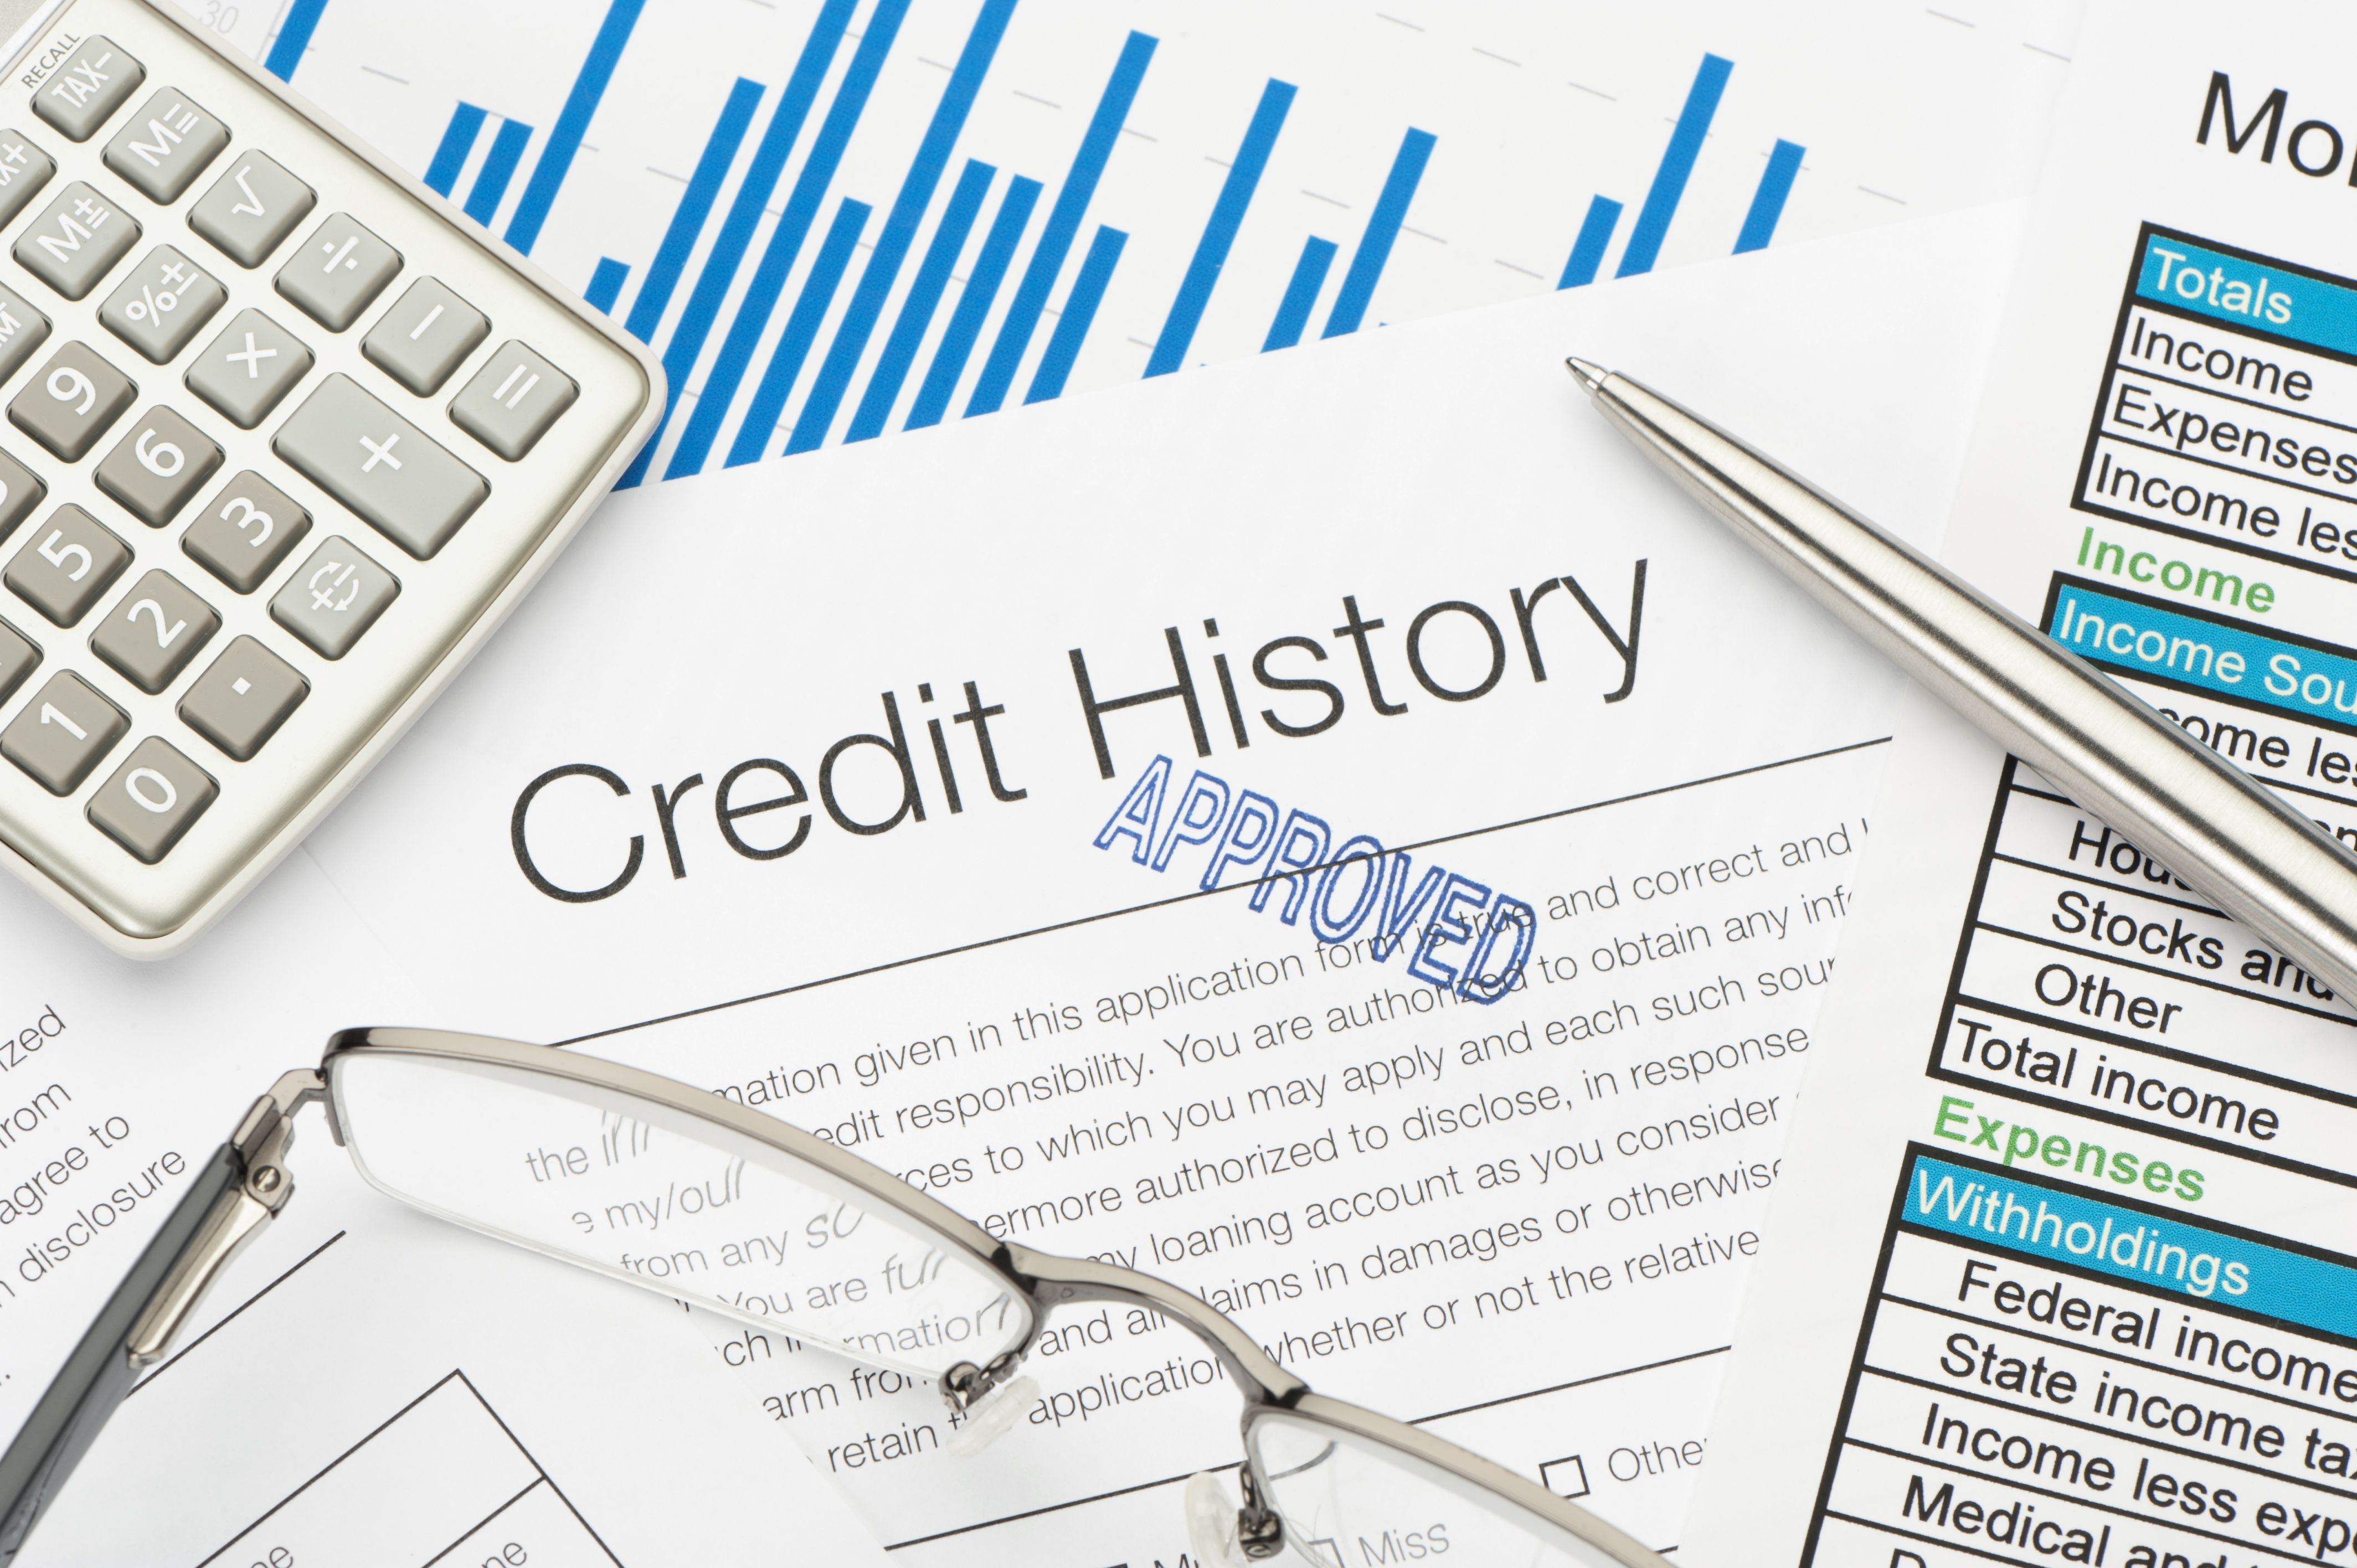 Instant Approval Bad Credit Loans No Need to Announce Your Credit Rating to Borrow Money